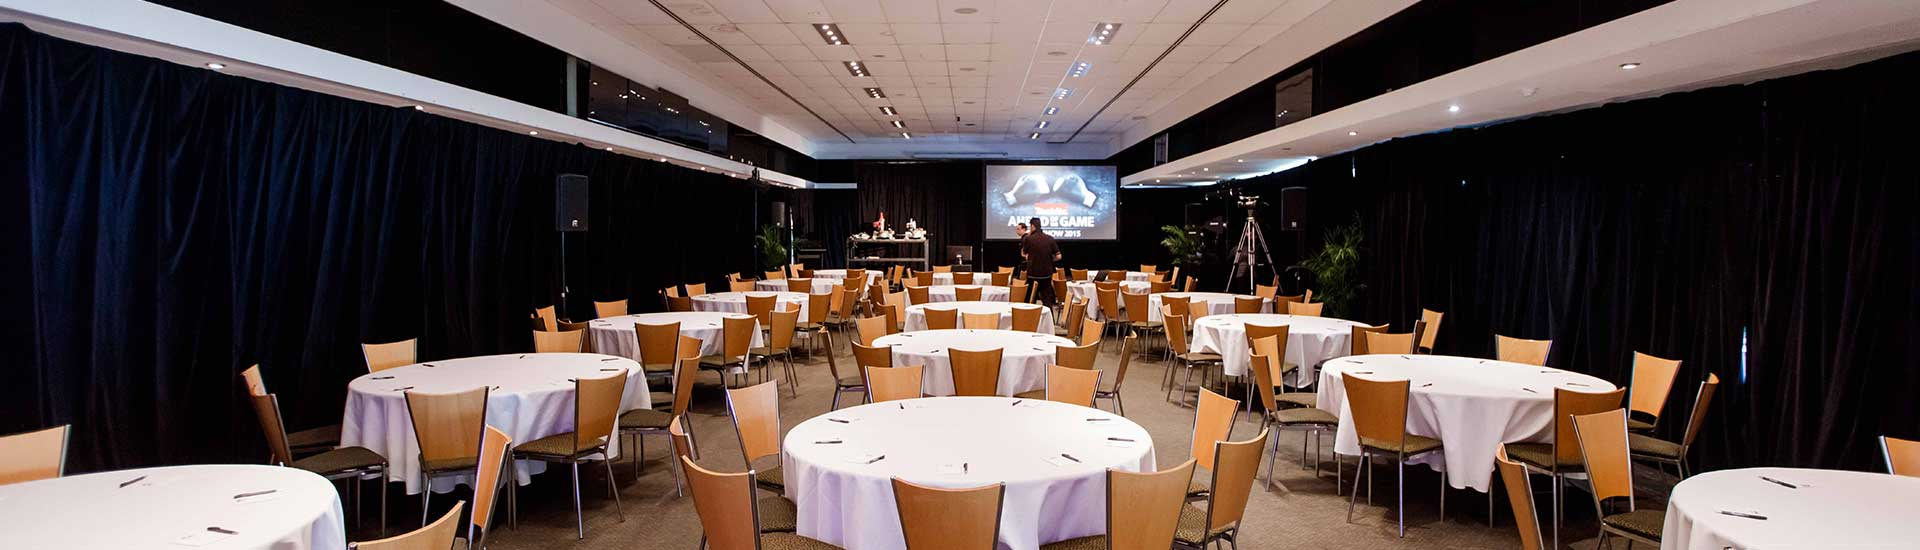 Vo Rogue Room is the perfect location for your function